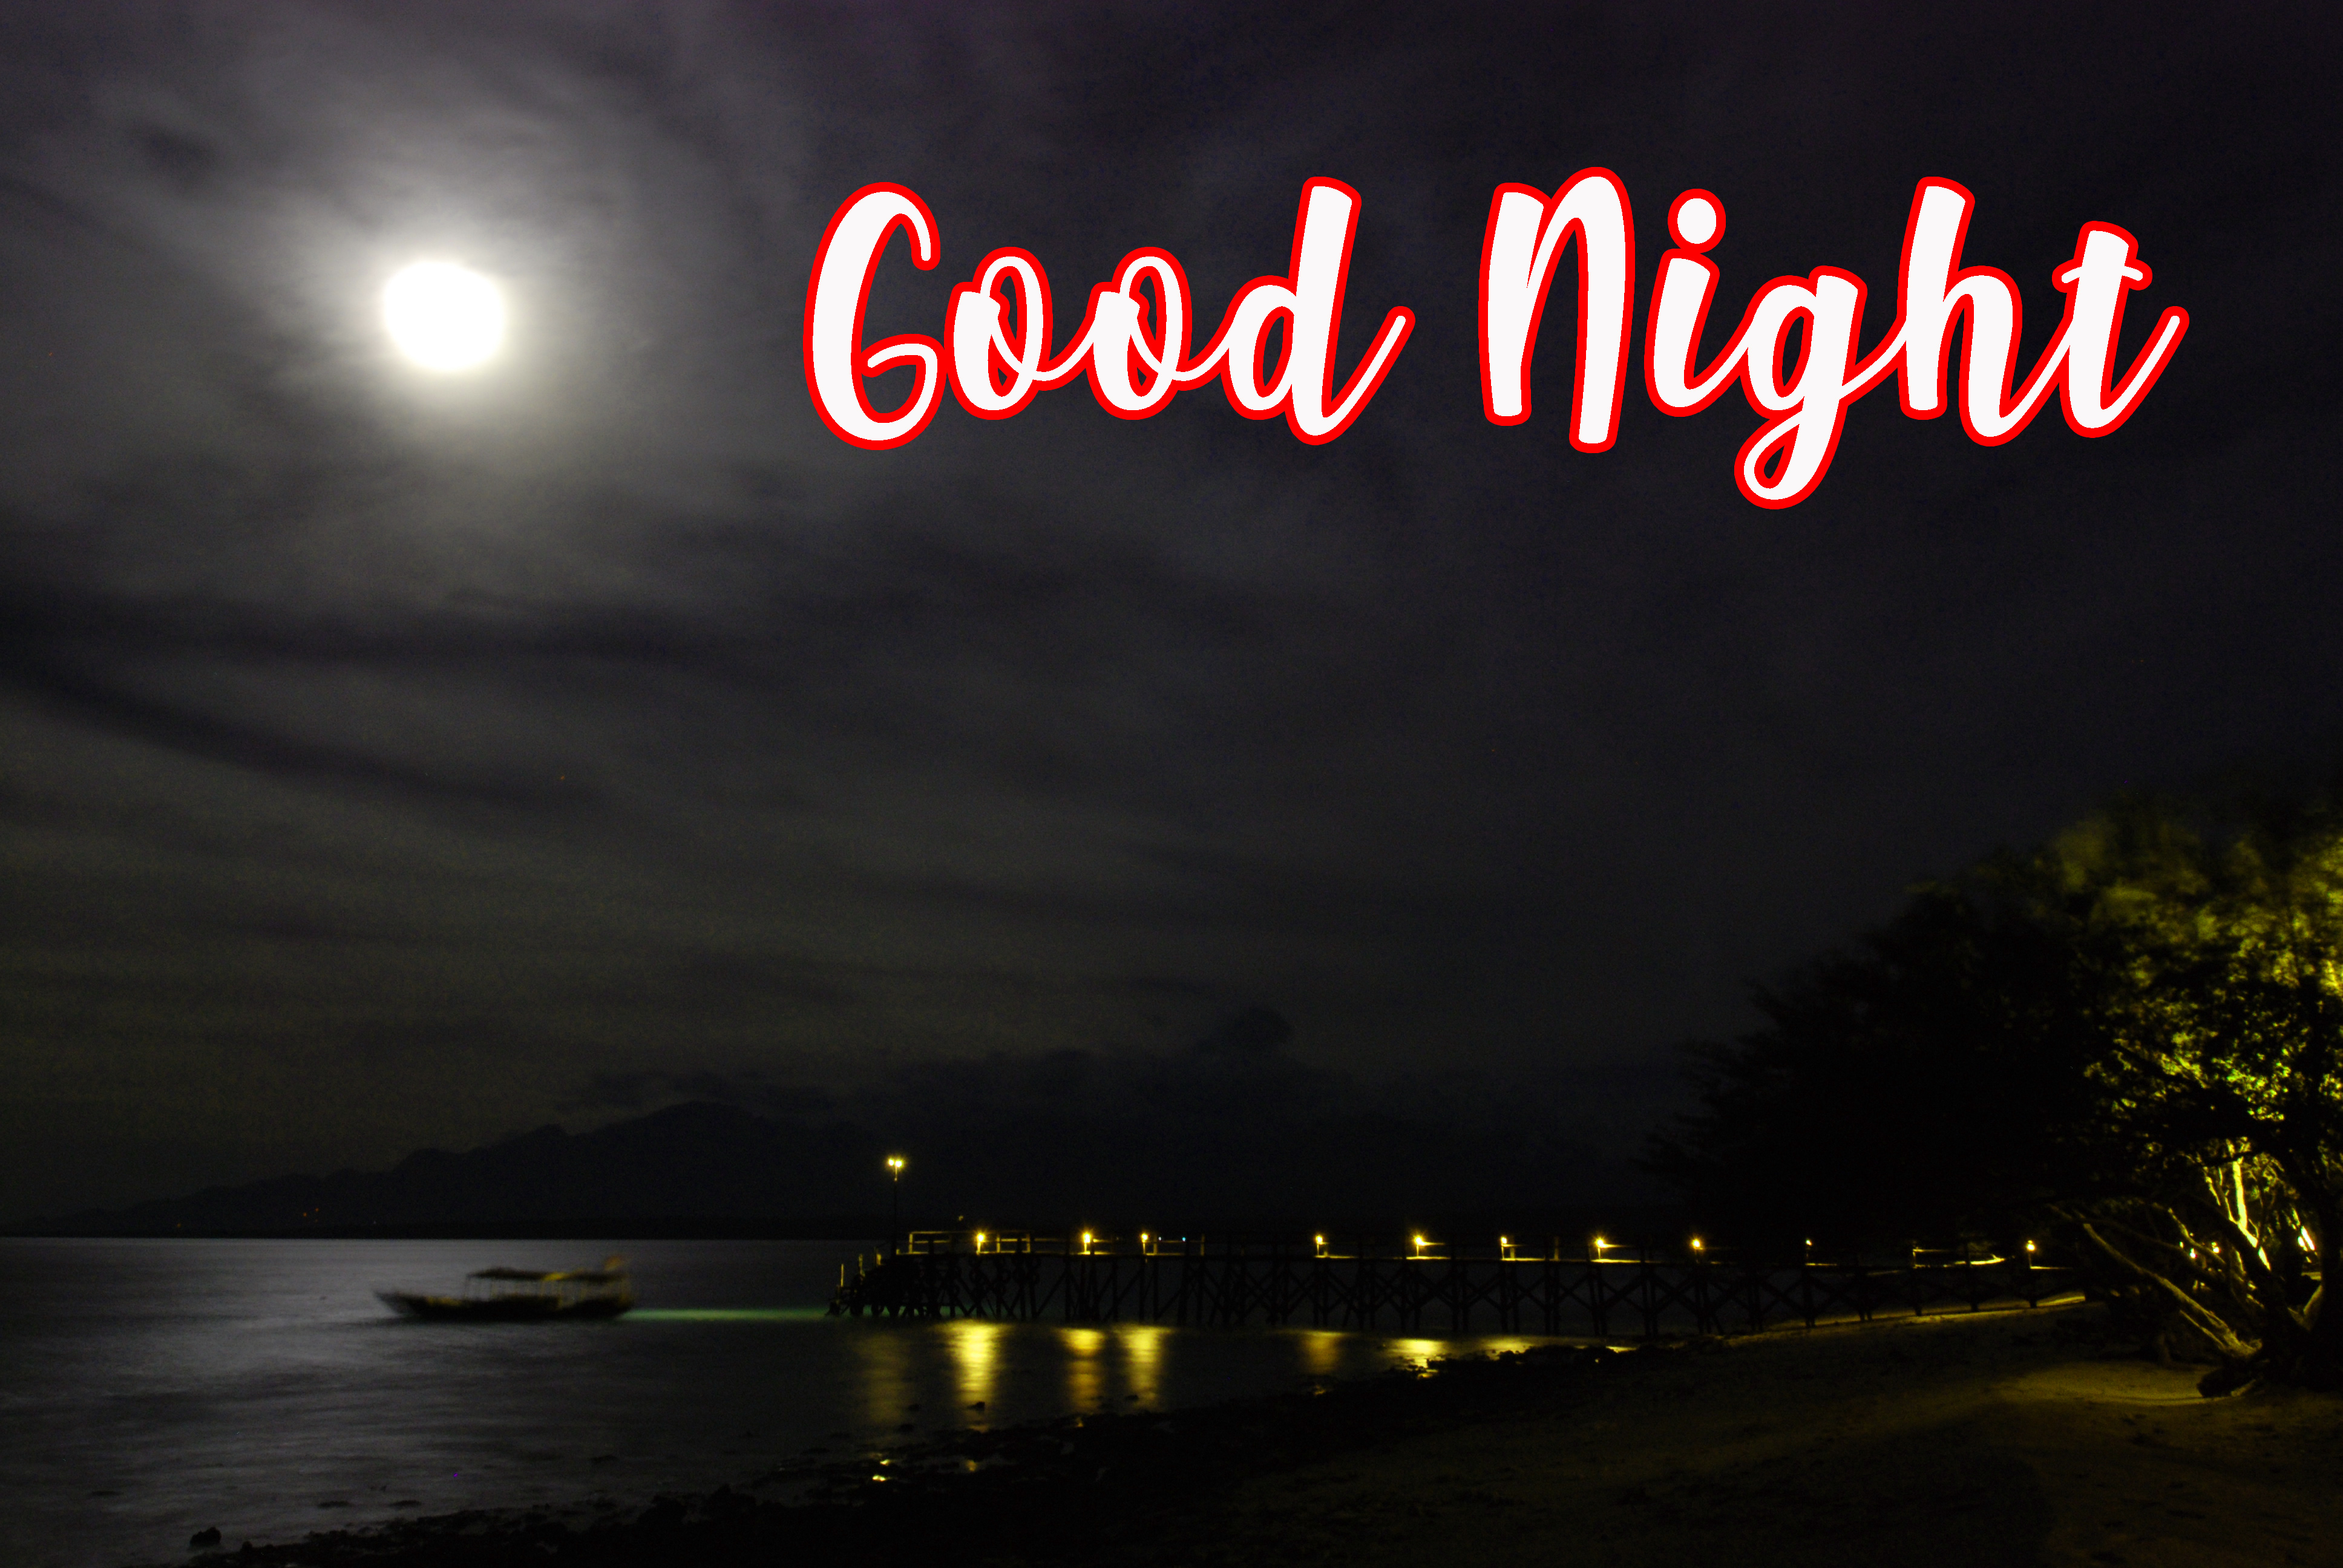 Good Night Images Wallpaper Photo Pictures Free Download